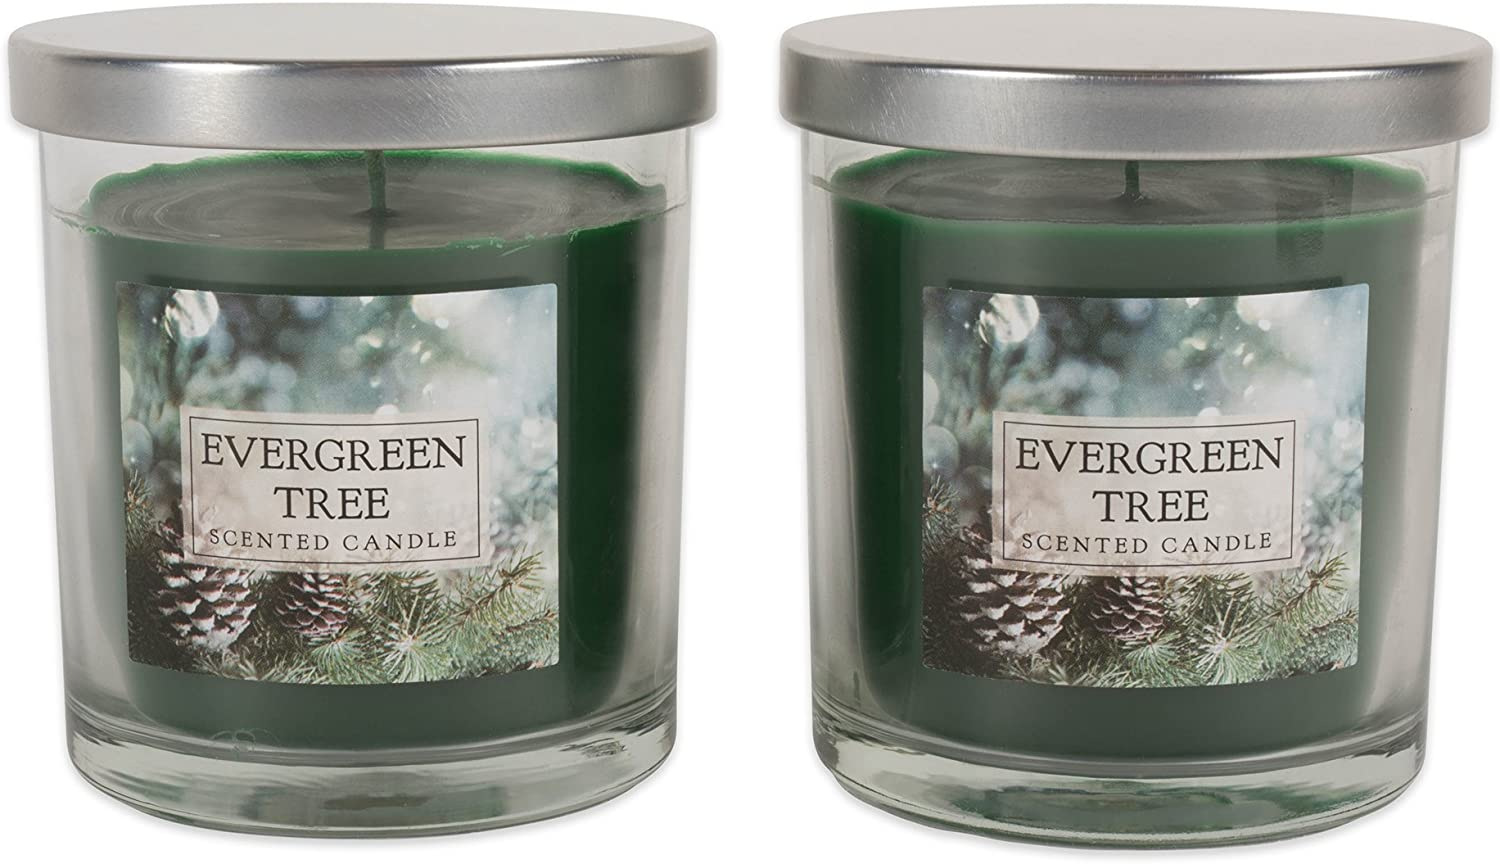 Home Traditions Single Wick Evenly Burning Highly Scented Jar Candle, Set of 2 (8 Oz Each) - Evergreen